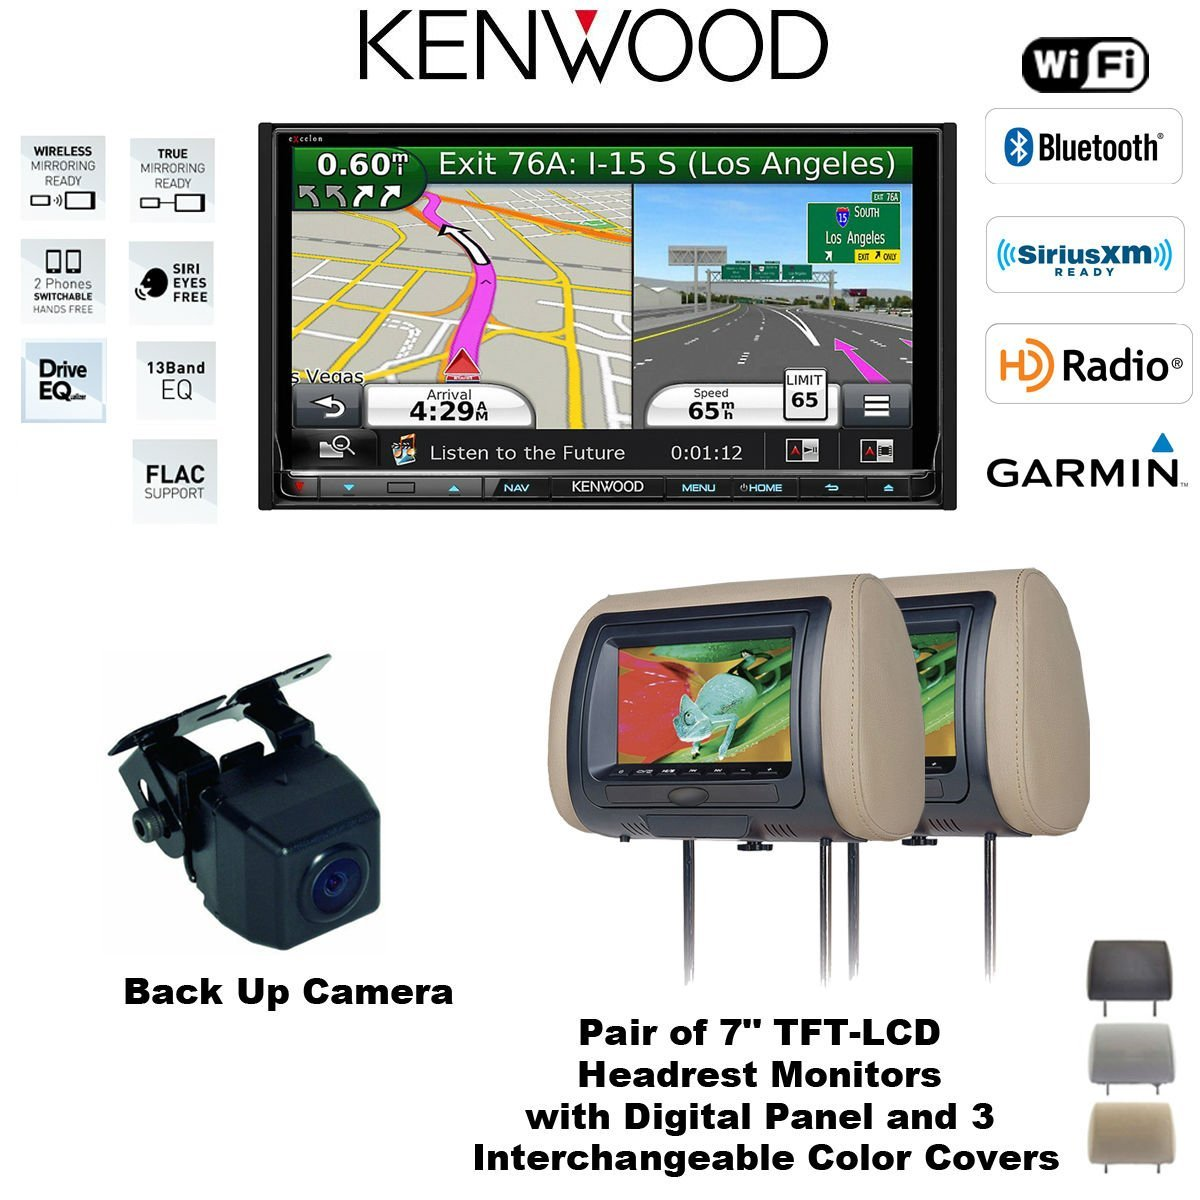 Kenwood DNN991HD In Dash Double Din DVD Navigation Receiver with Built in Bluetooth, Two CLS700X Headrest Monitors and a TE-SSC Backup Rear View Camera Package and FREE SOTS Air Freshener